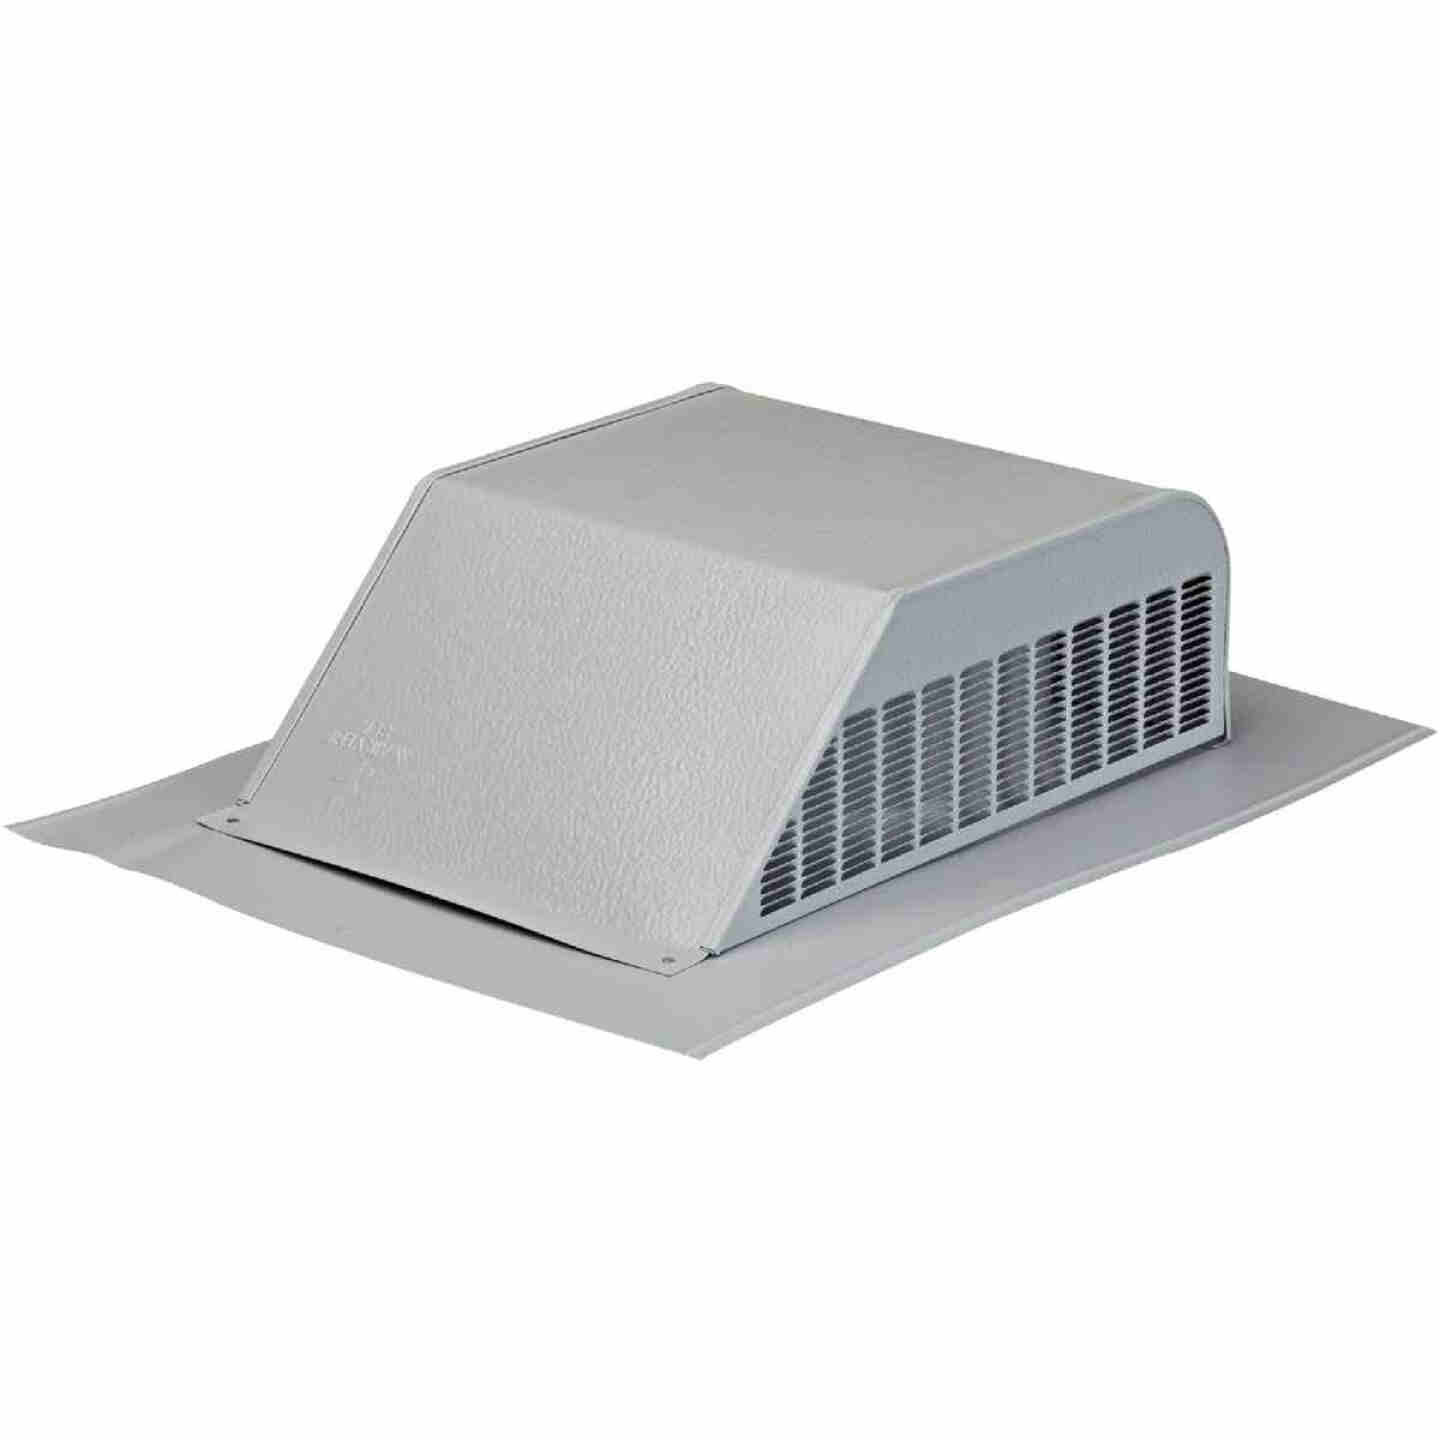 Airhawk 50 In. Gray Aluminum Slant Back Roof Vent Image 1